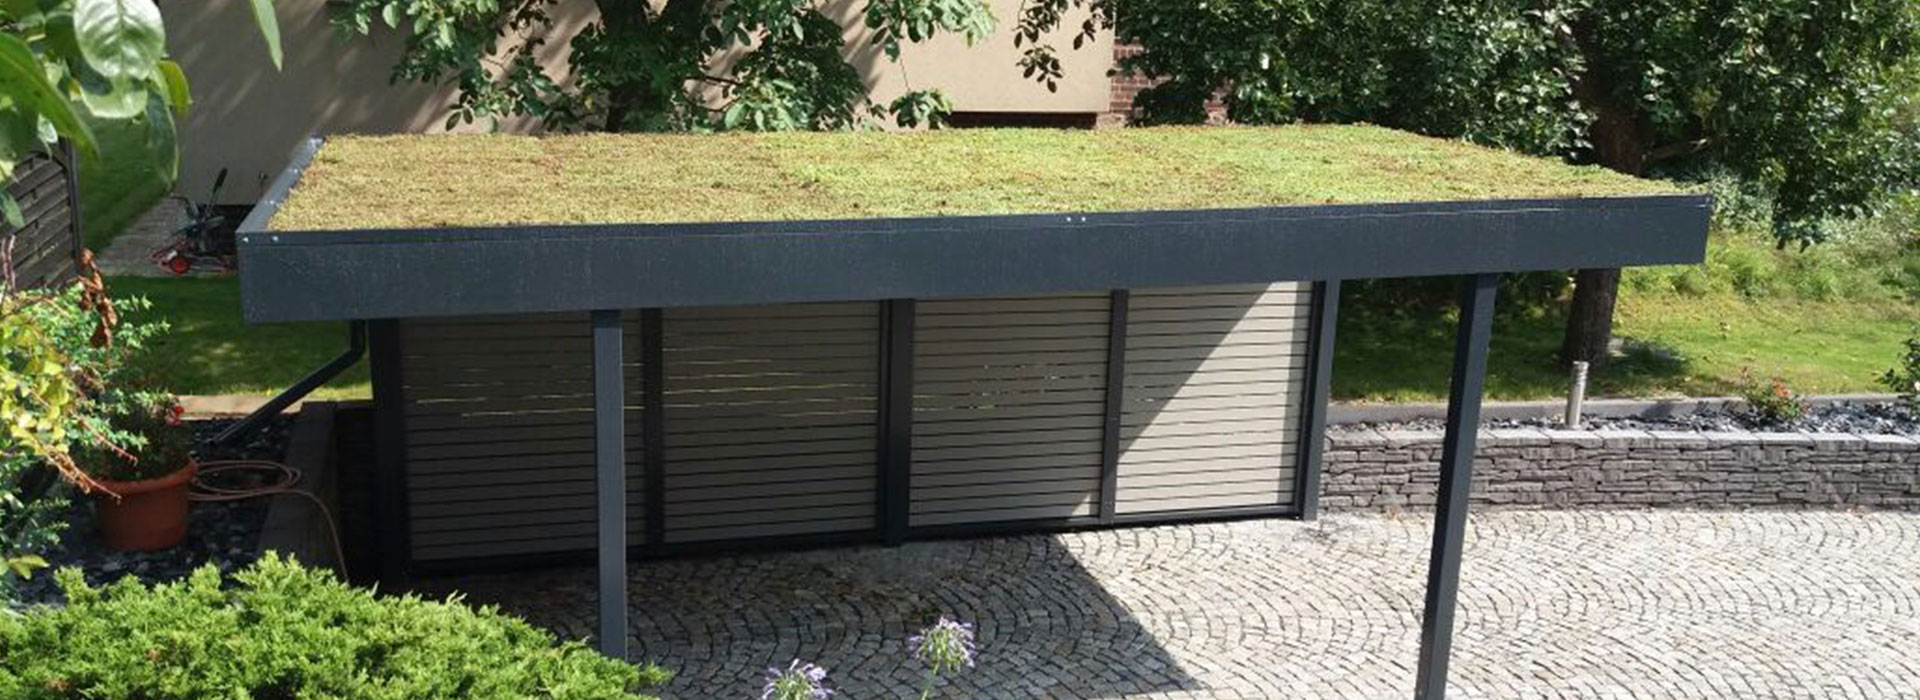 carport bauplan bauen mit dem carport doppelcarport. Black Bedroom Furniture Sets. Home Design Ideas